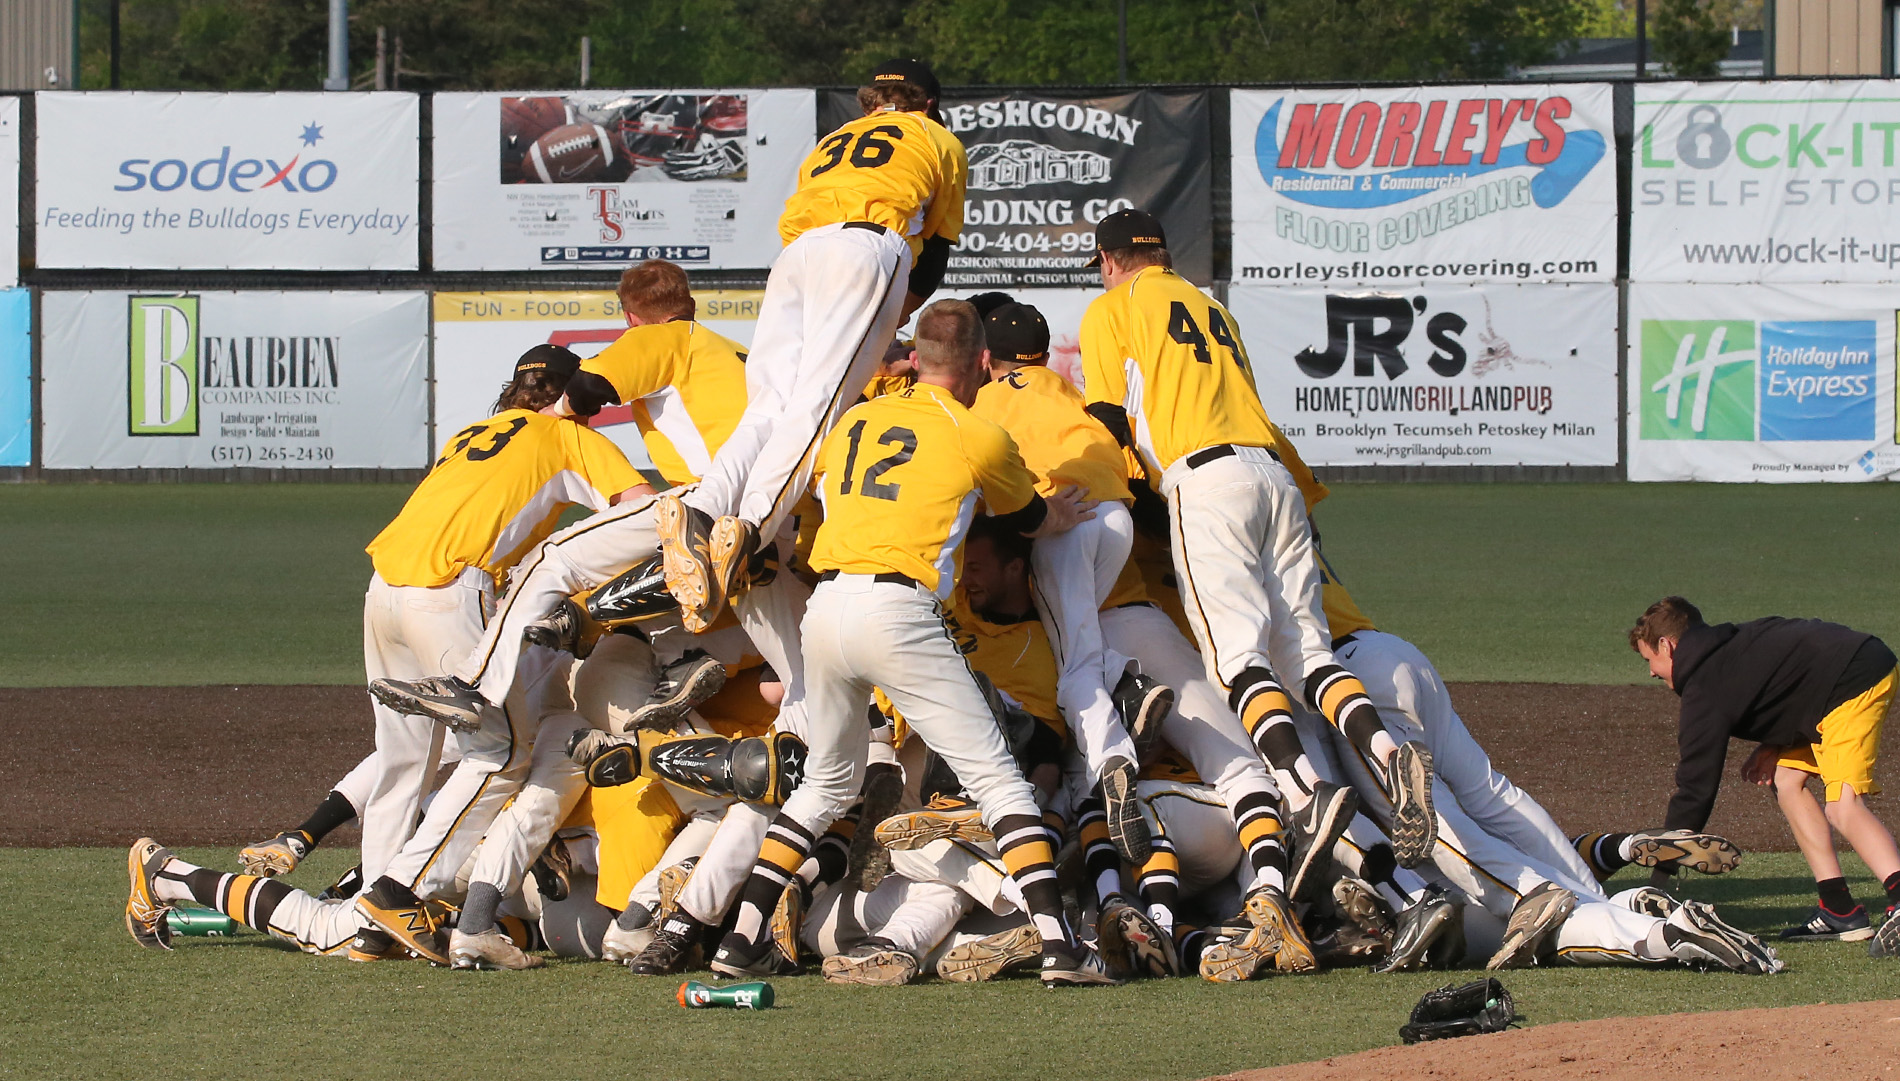 Players celebrate the 'Dogpile after the final out as the Adrian Bulldogs are the 2017 MIAA Baseball Tournament champions. (Action photo by Mike Dickie)